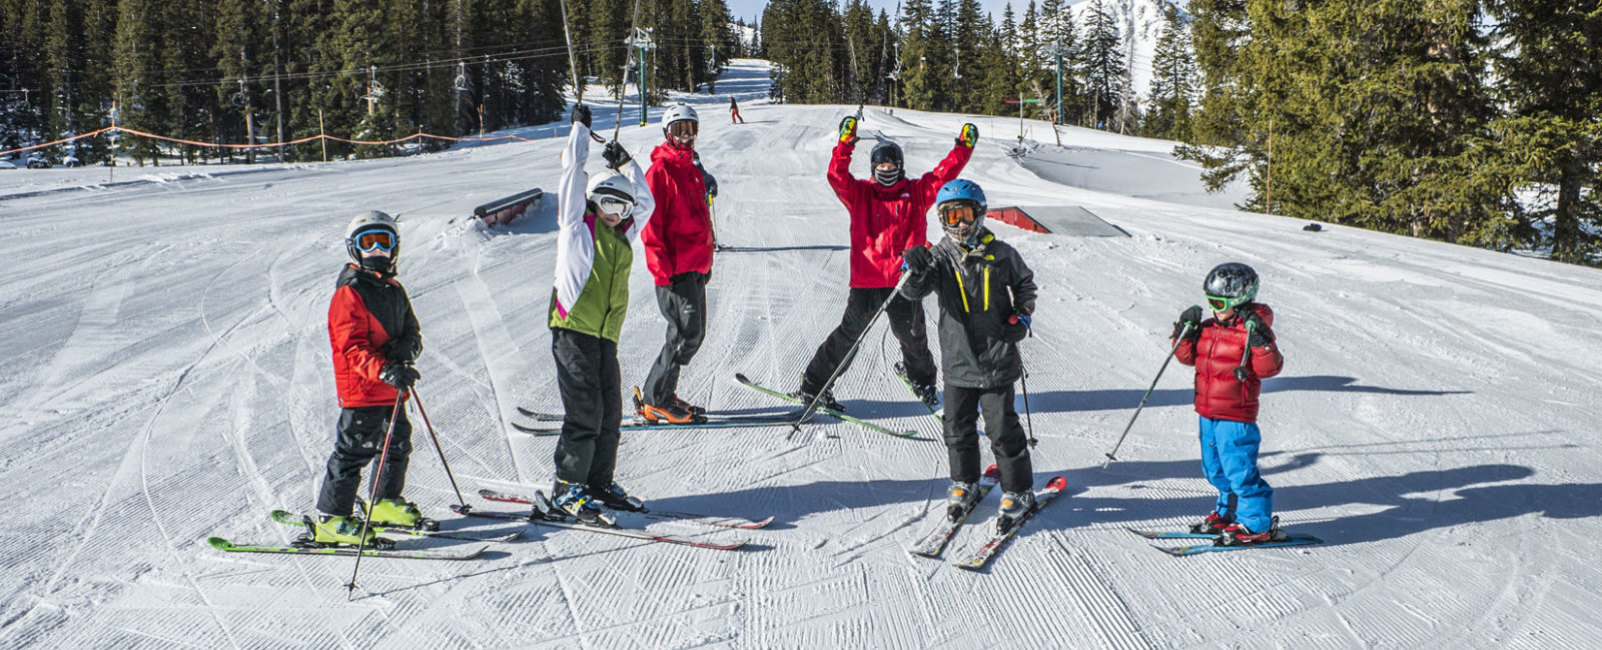 Skiing/Boarding Best Therapy for Those with Disabilities